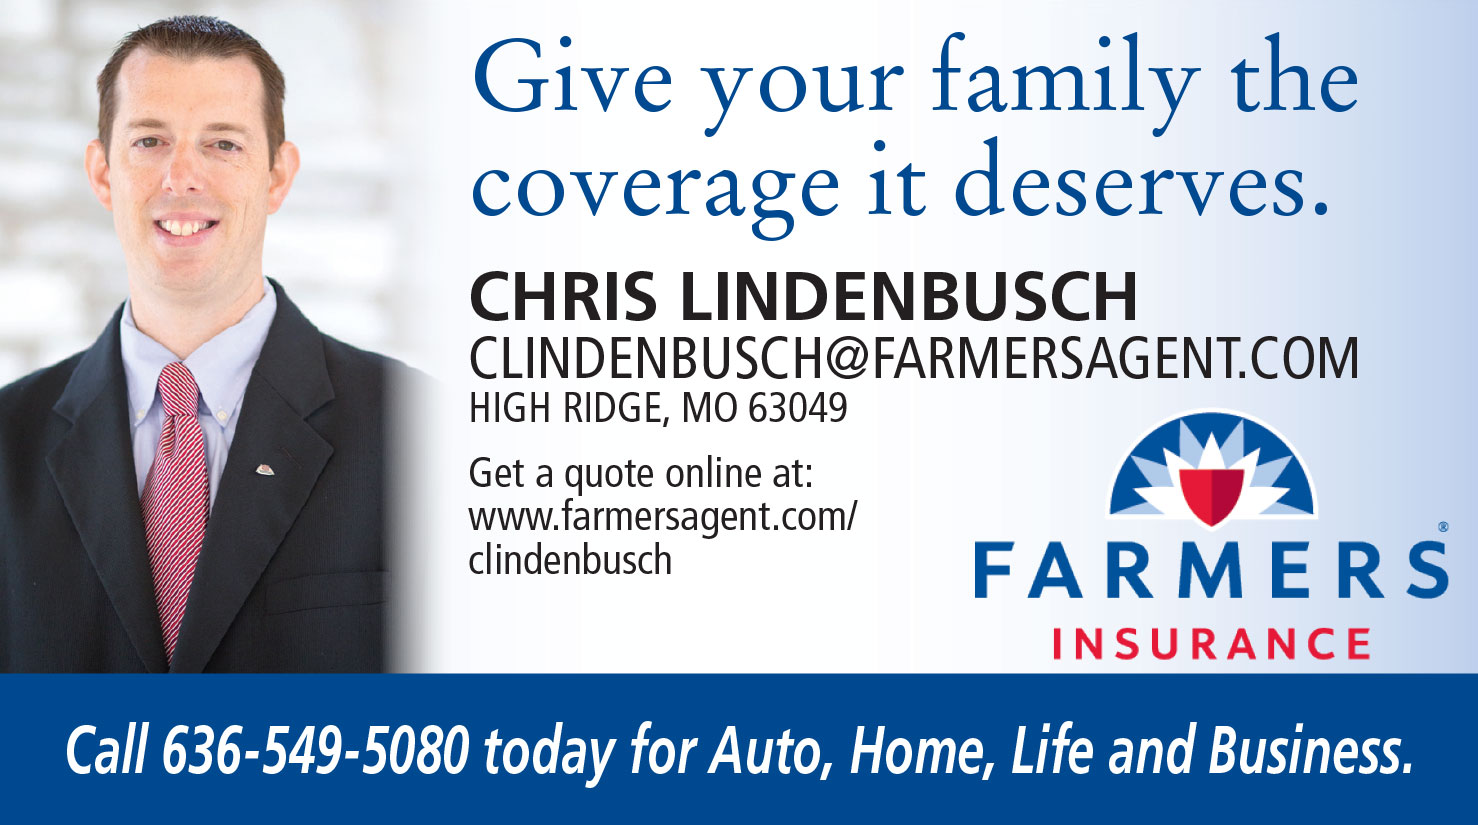 Farmers Insurance Quote Business Of The Month Christopher Lindenbusch With Farmers